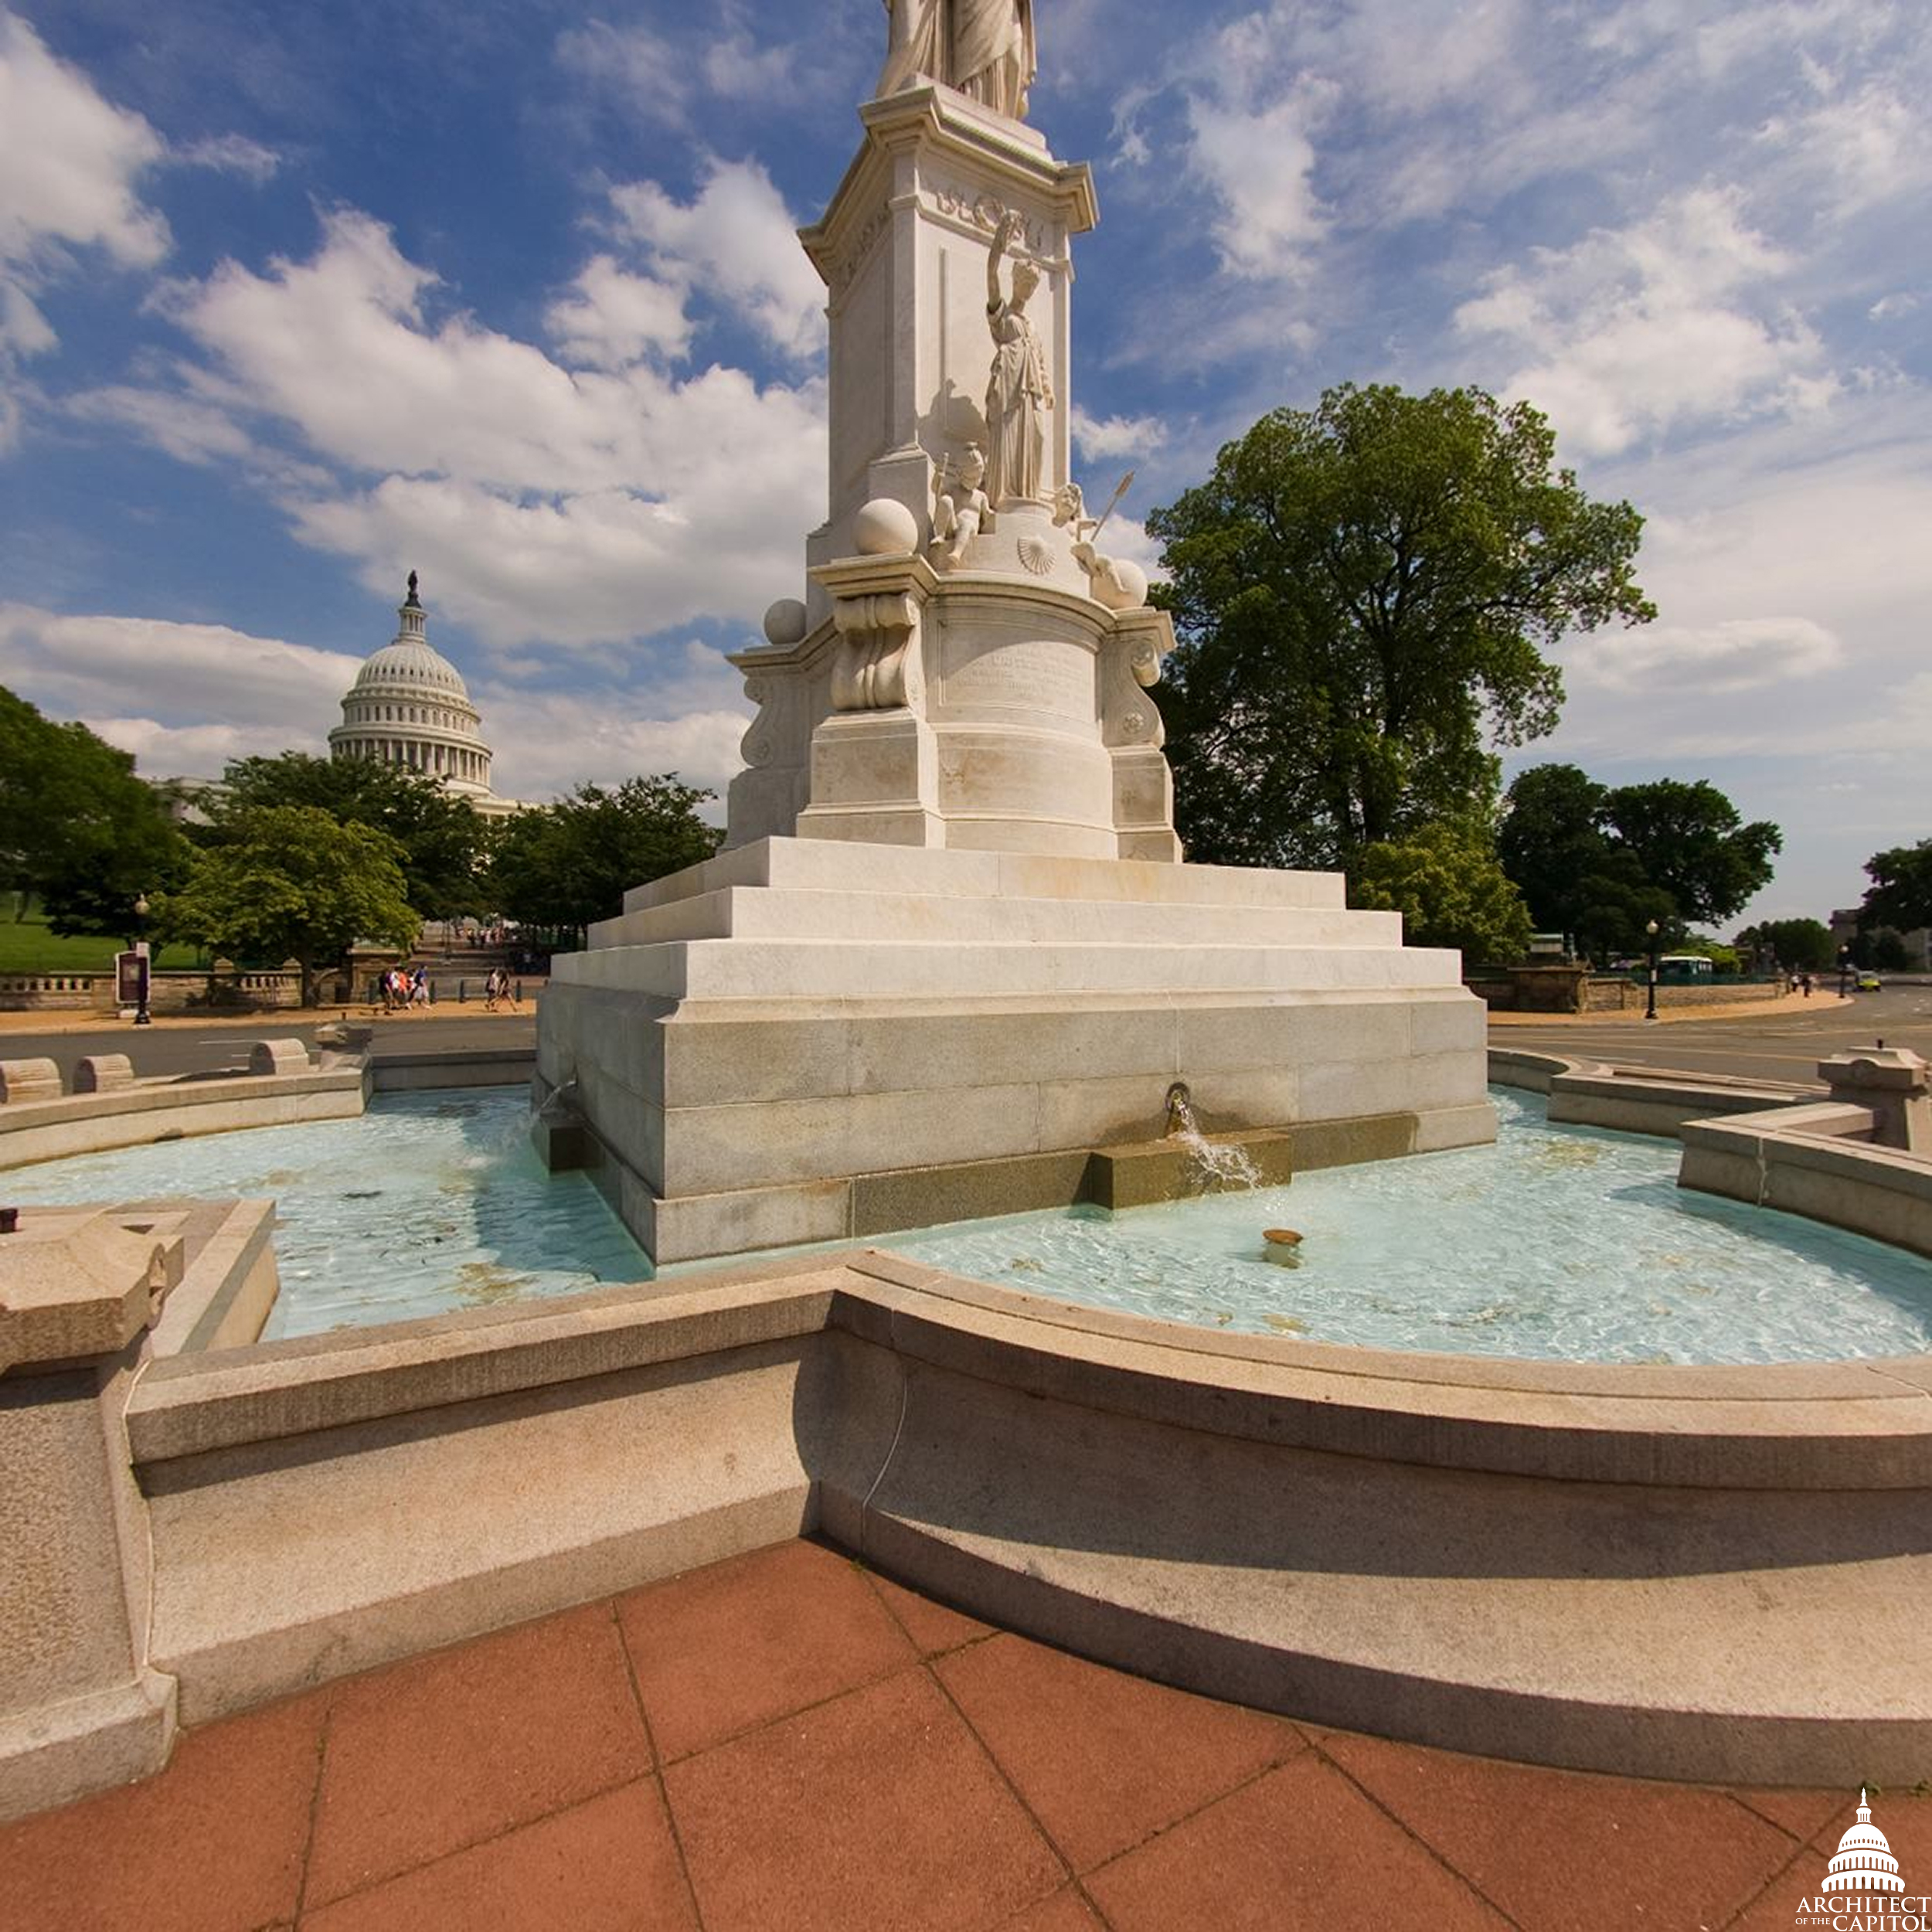 The Peace Monument with the Capitol Dome in the background.